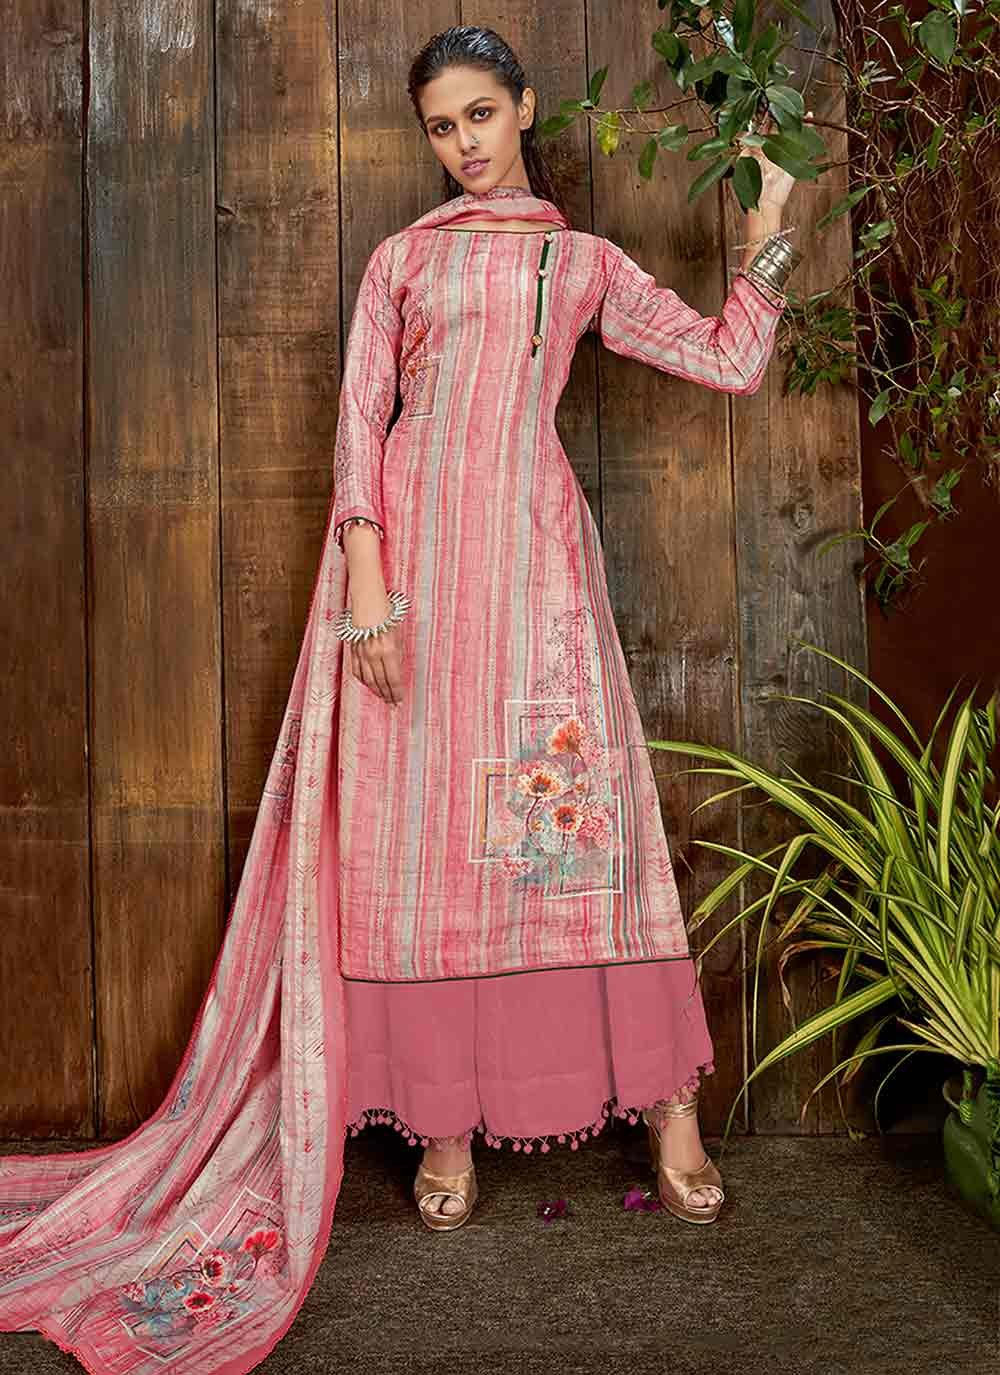 Digital Print Pashmina Bollywood Salwar Kameez